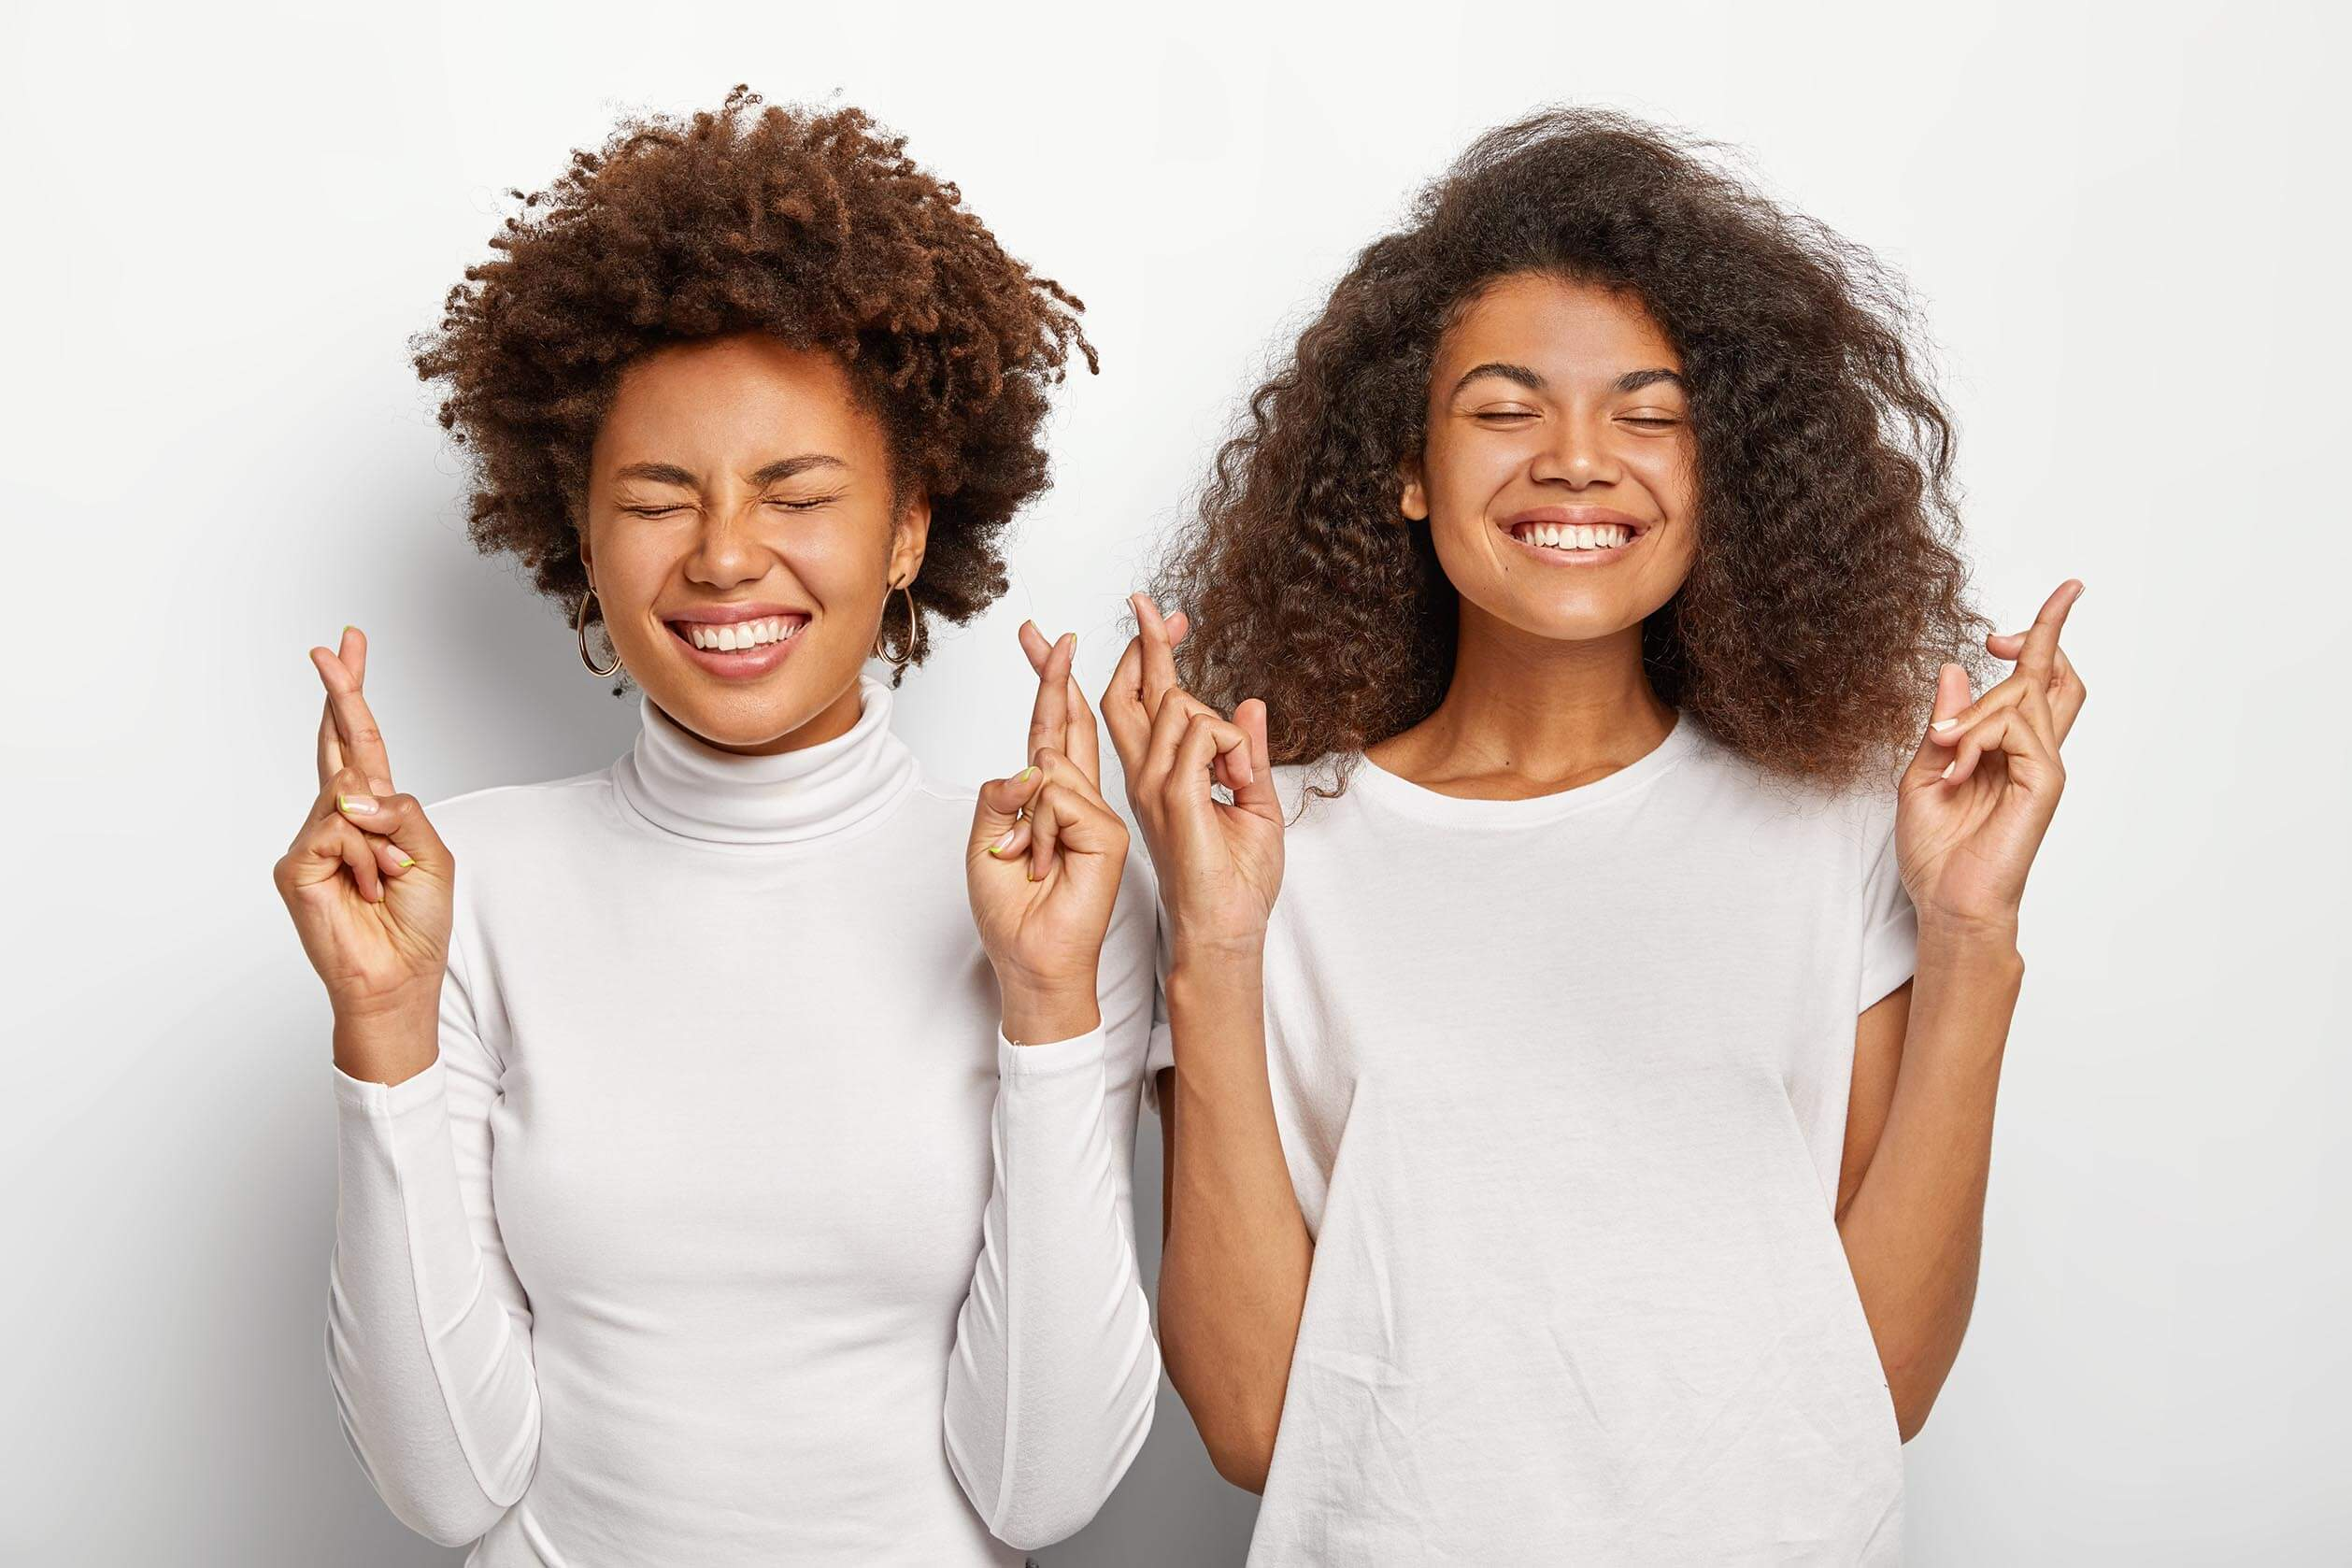 Two hopeful Afro American women pray wish come true, keep fingers crossed, smile broadly, dressed in white casual clothes, anticipate positive results, stand next to each other. Fullfill our dreams